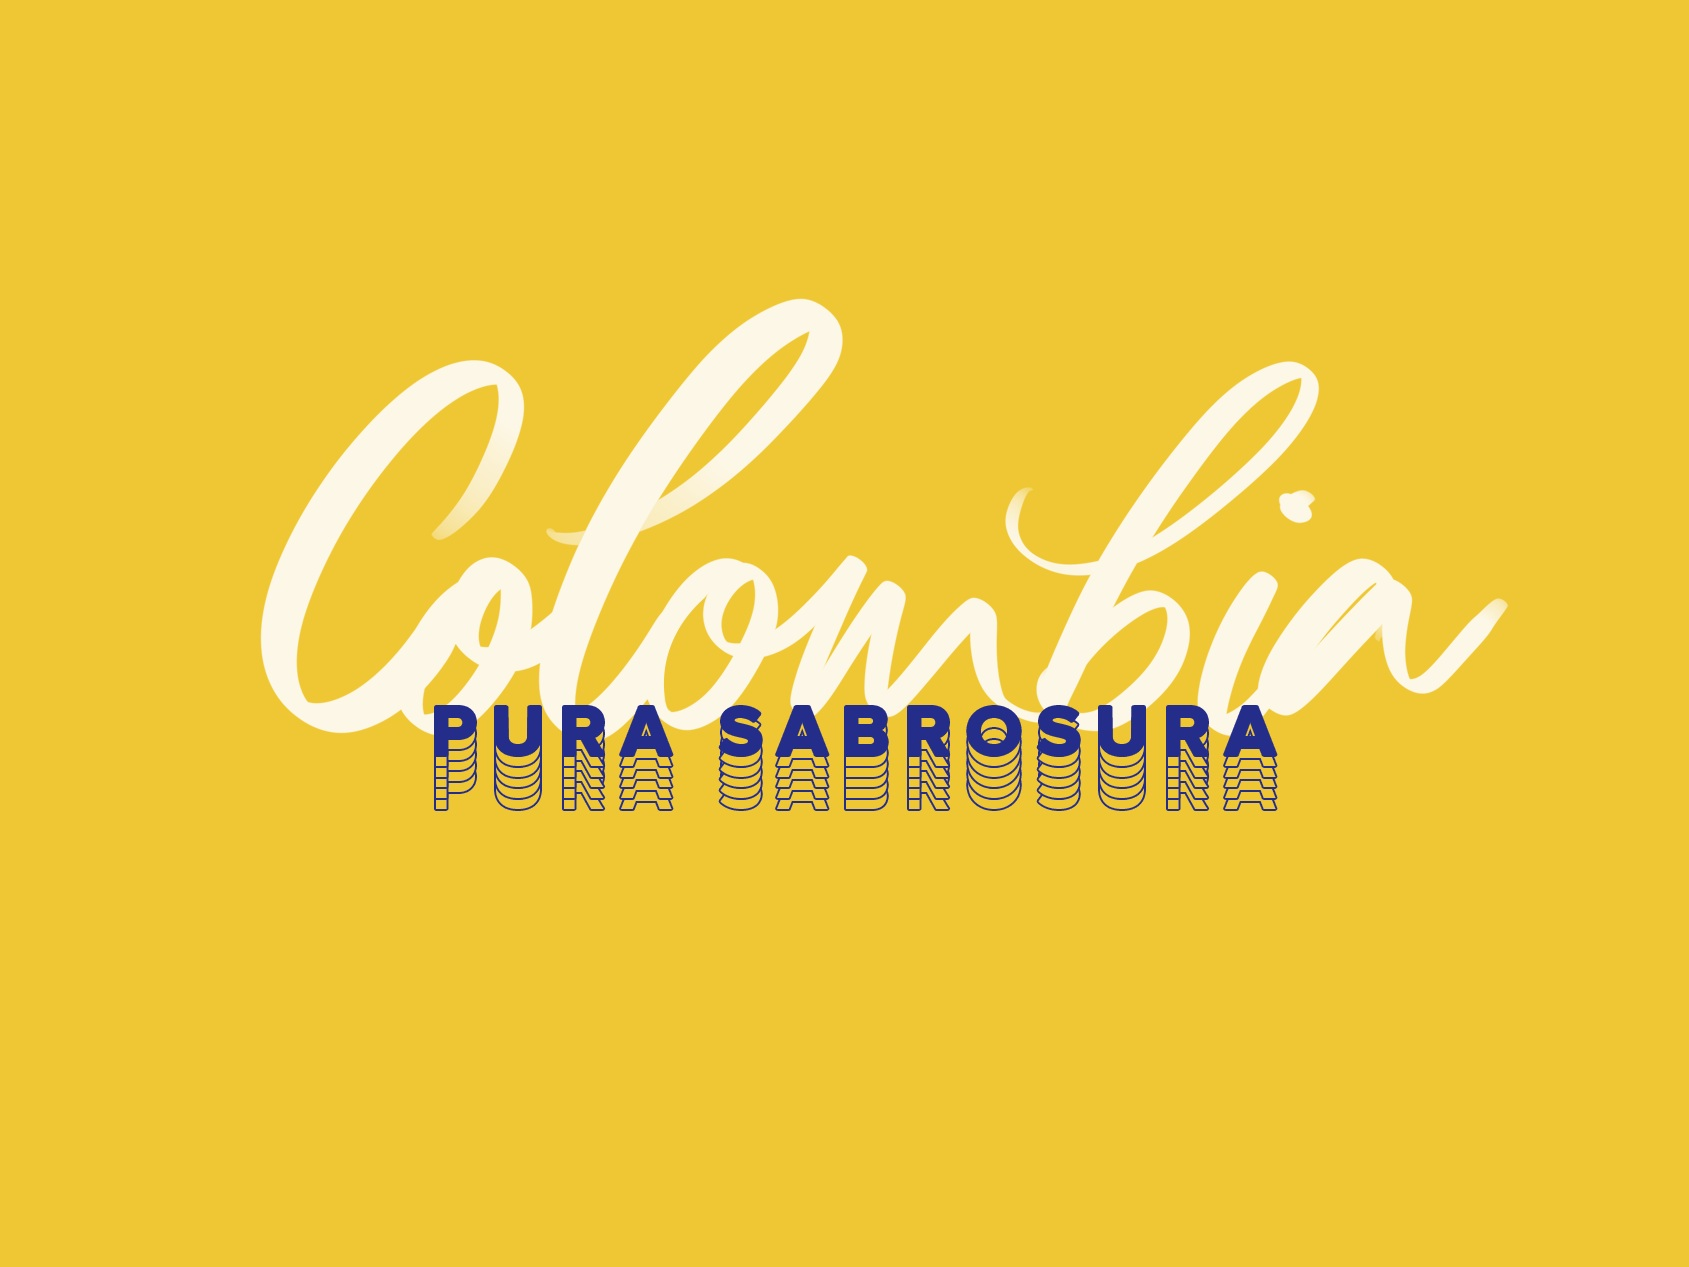 Banners_Colombia.png